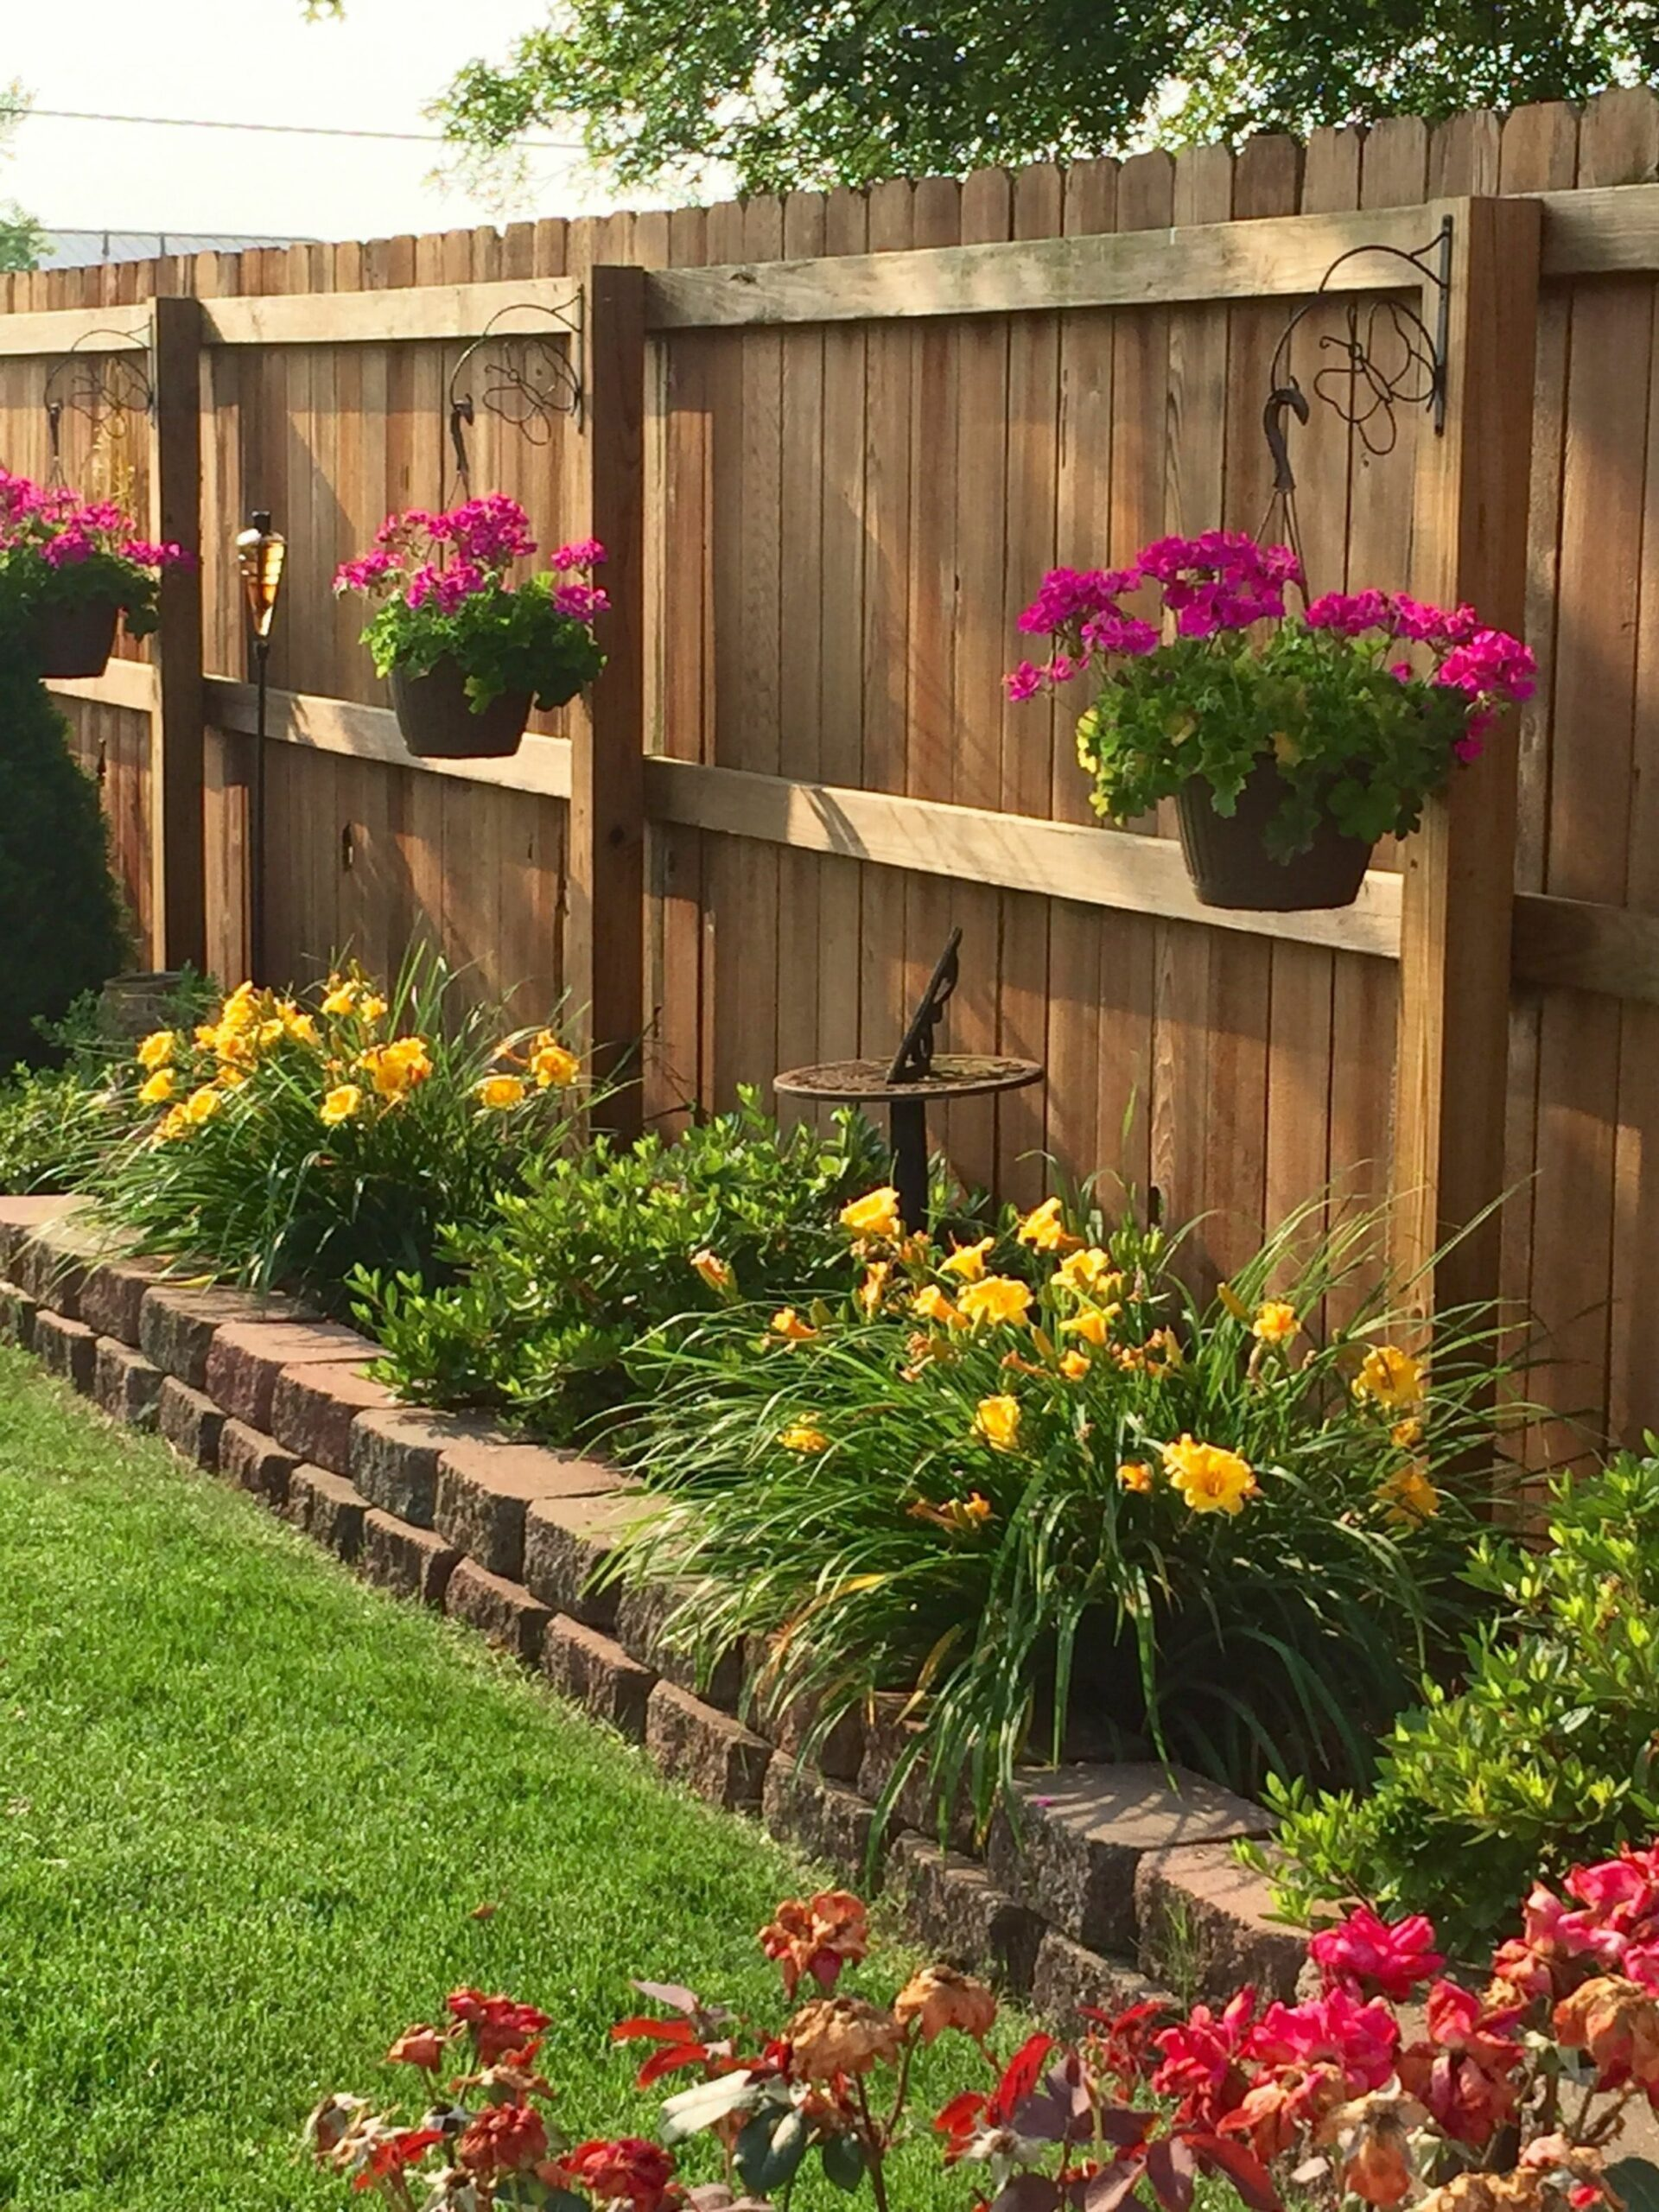 All about backyard landscaping ideas on a budget small layout ...